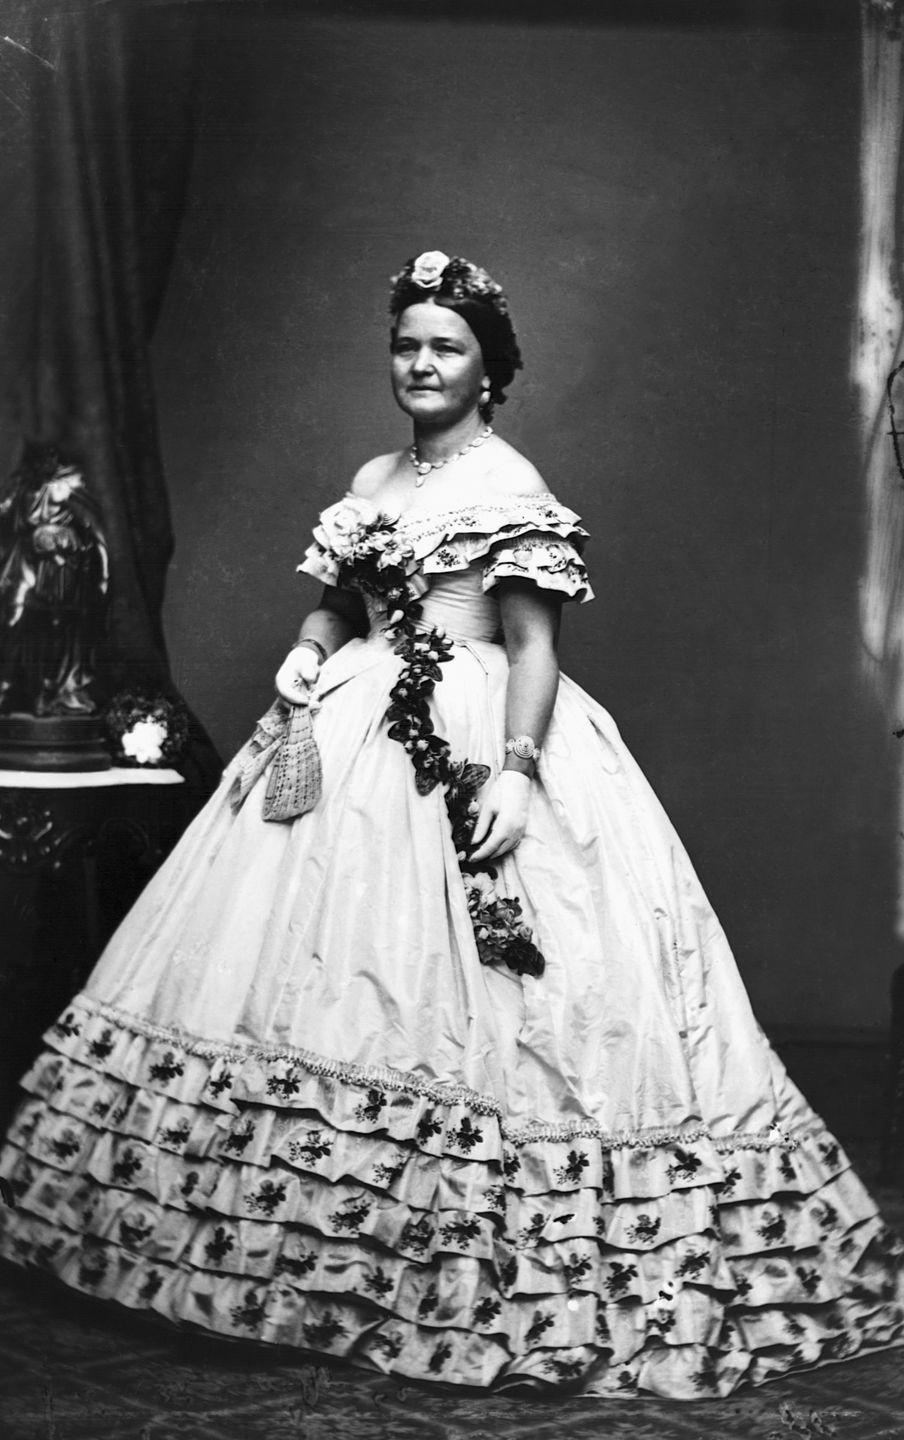 <p>Like we said in the previous slide, Lane Johnston's dress was a hit. The next first lady, Mary Todd Lincoln, loved the dress style so much she wore something similar to her husband's inauguration. As you can see, she liked her items lavish and is said to have gone $20,000 over the Congressional budget due to her spending habits.</p>